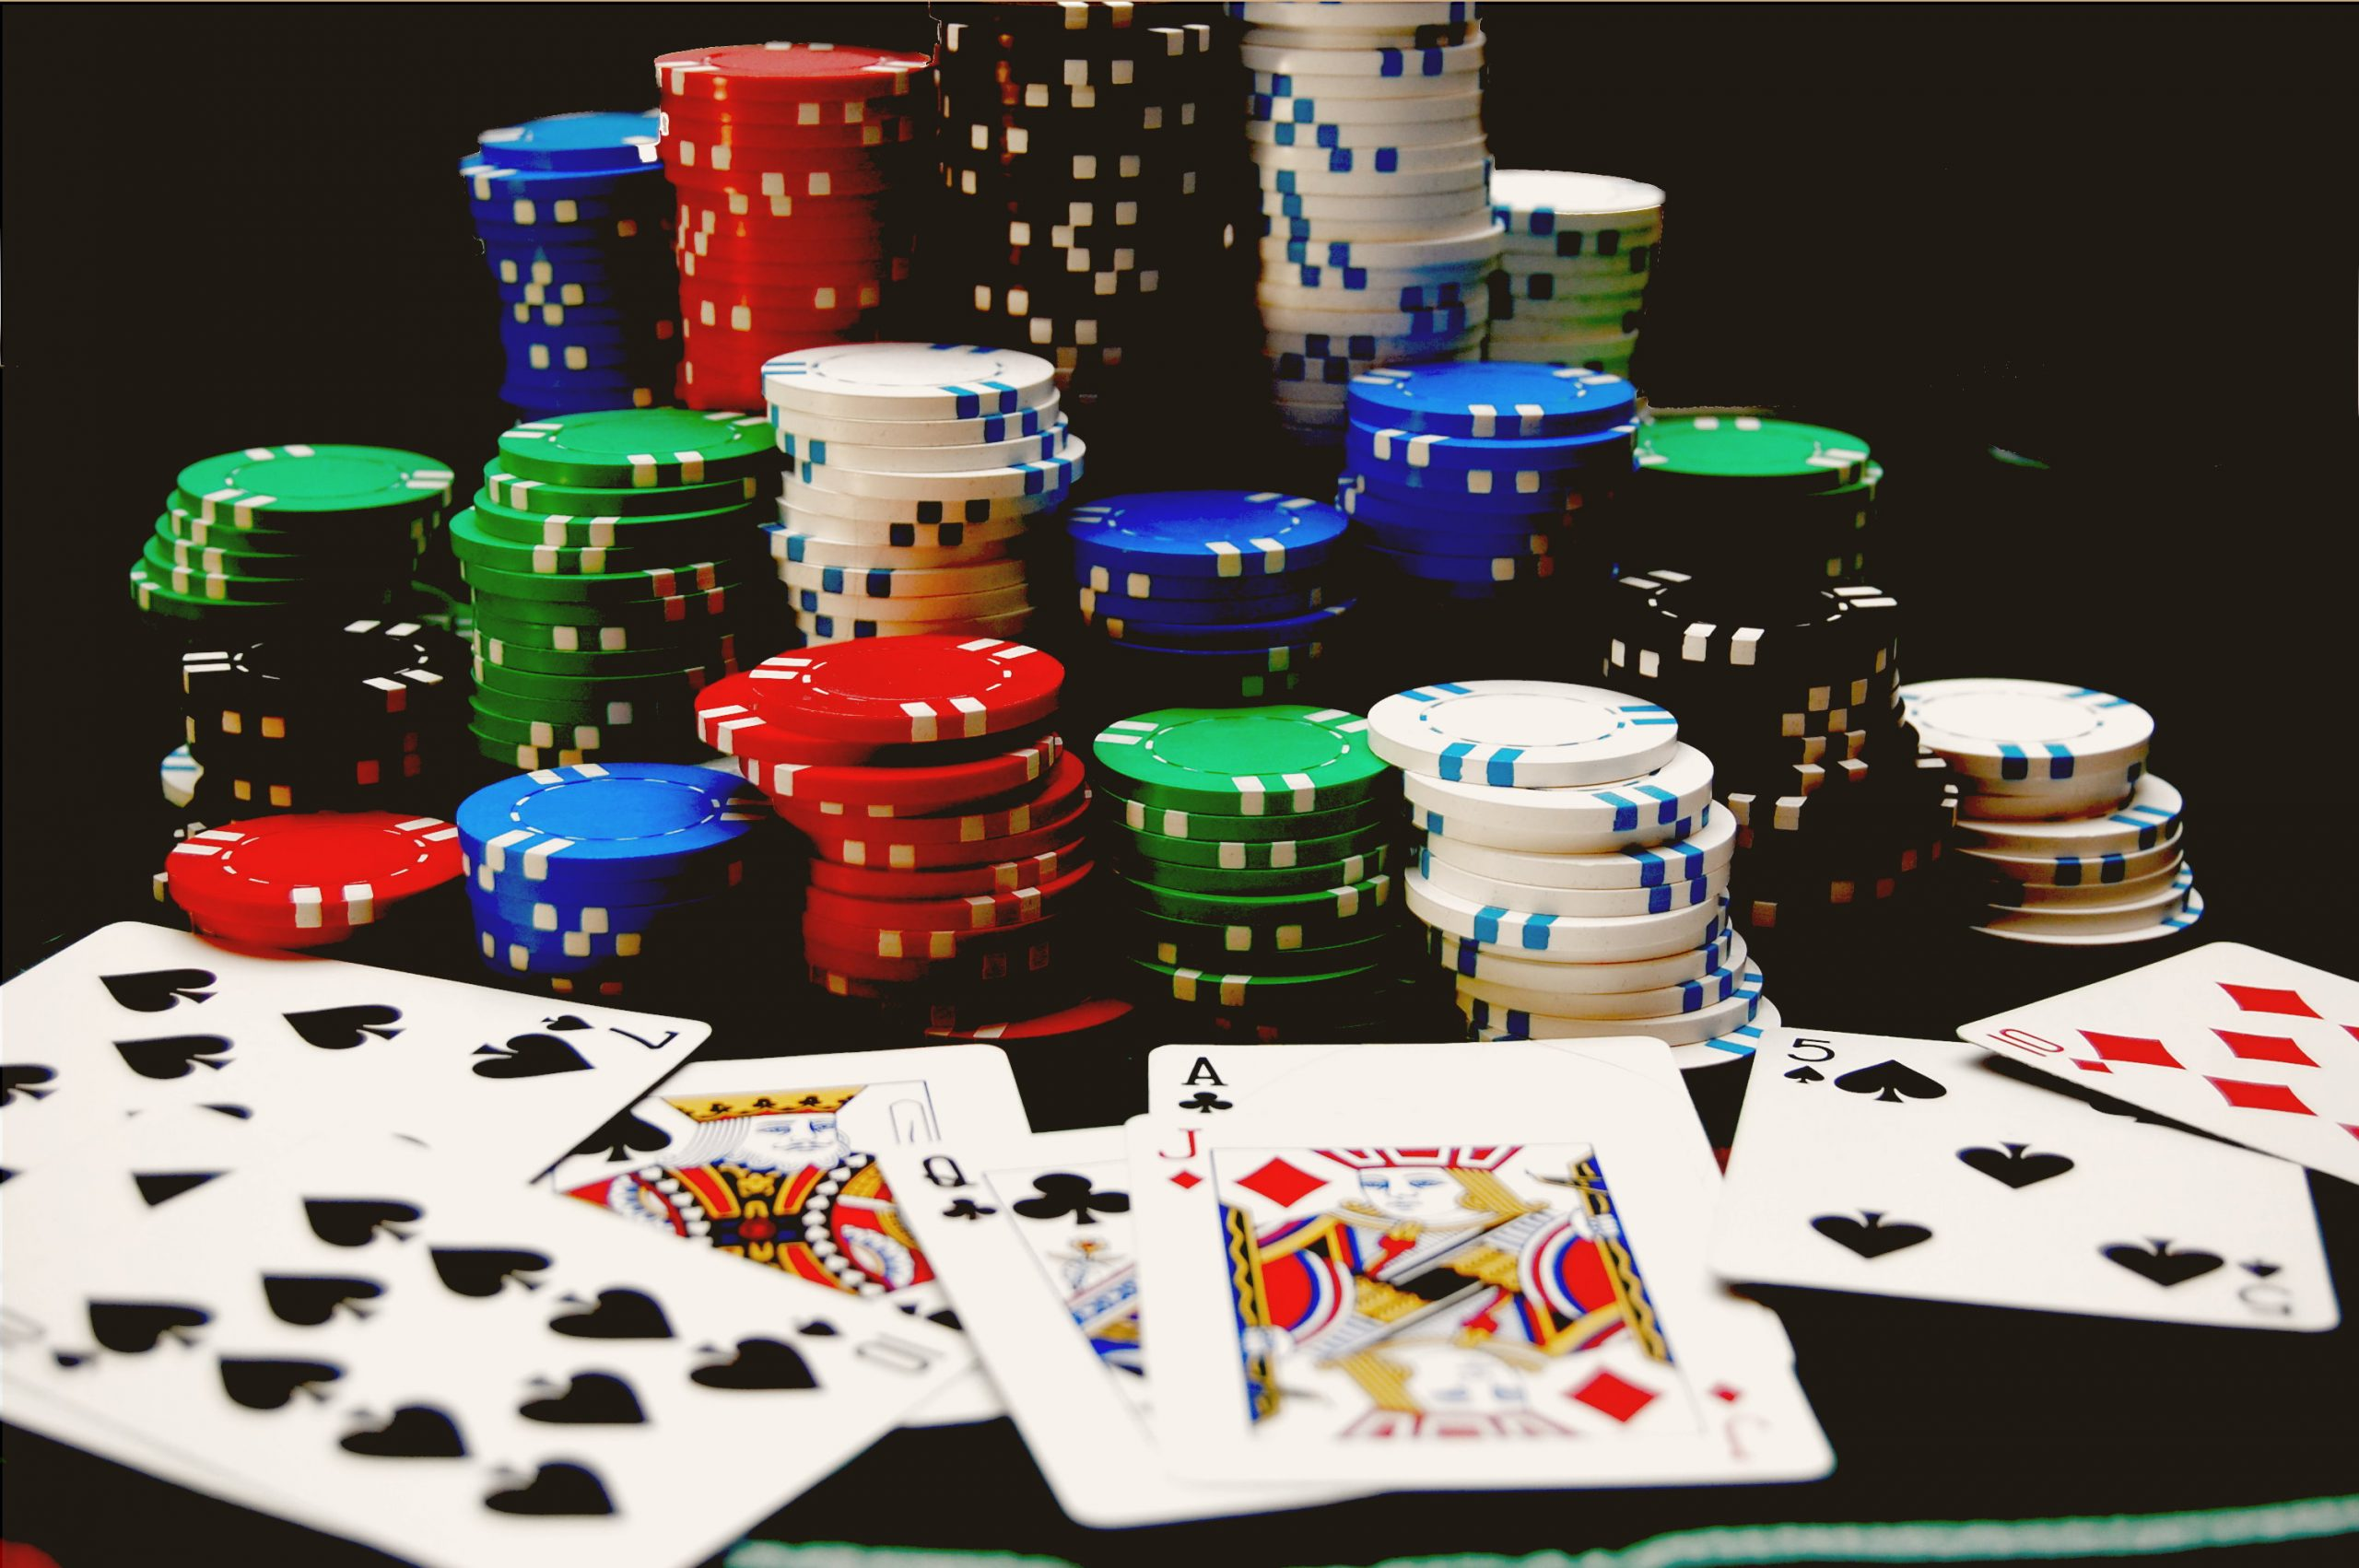 Best poker sites overall information for the poker players